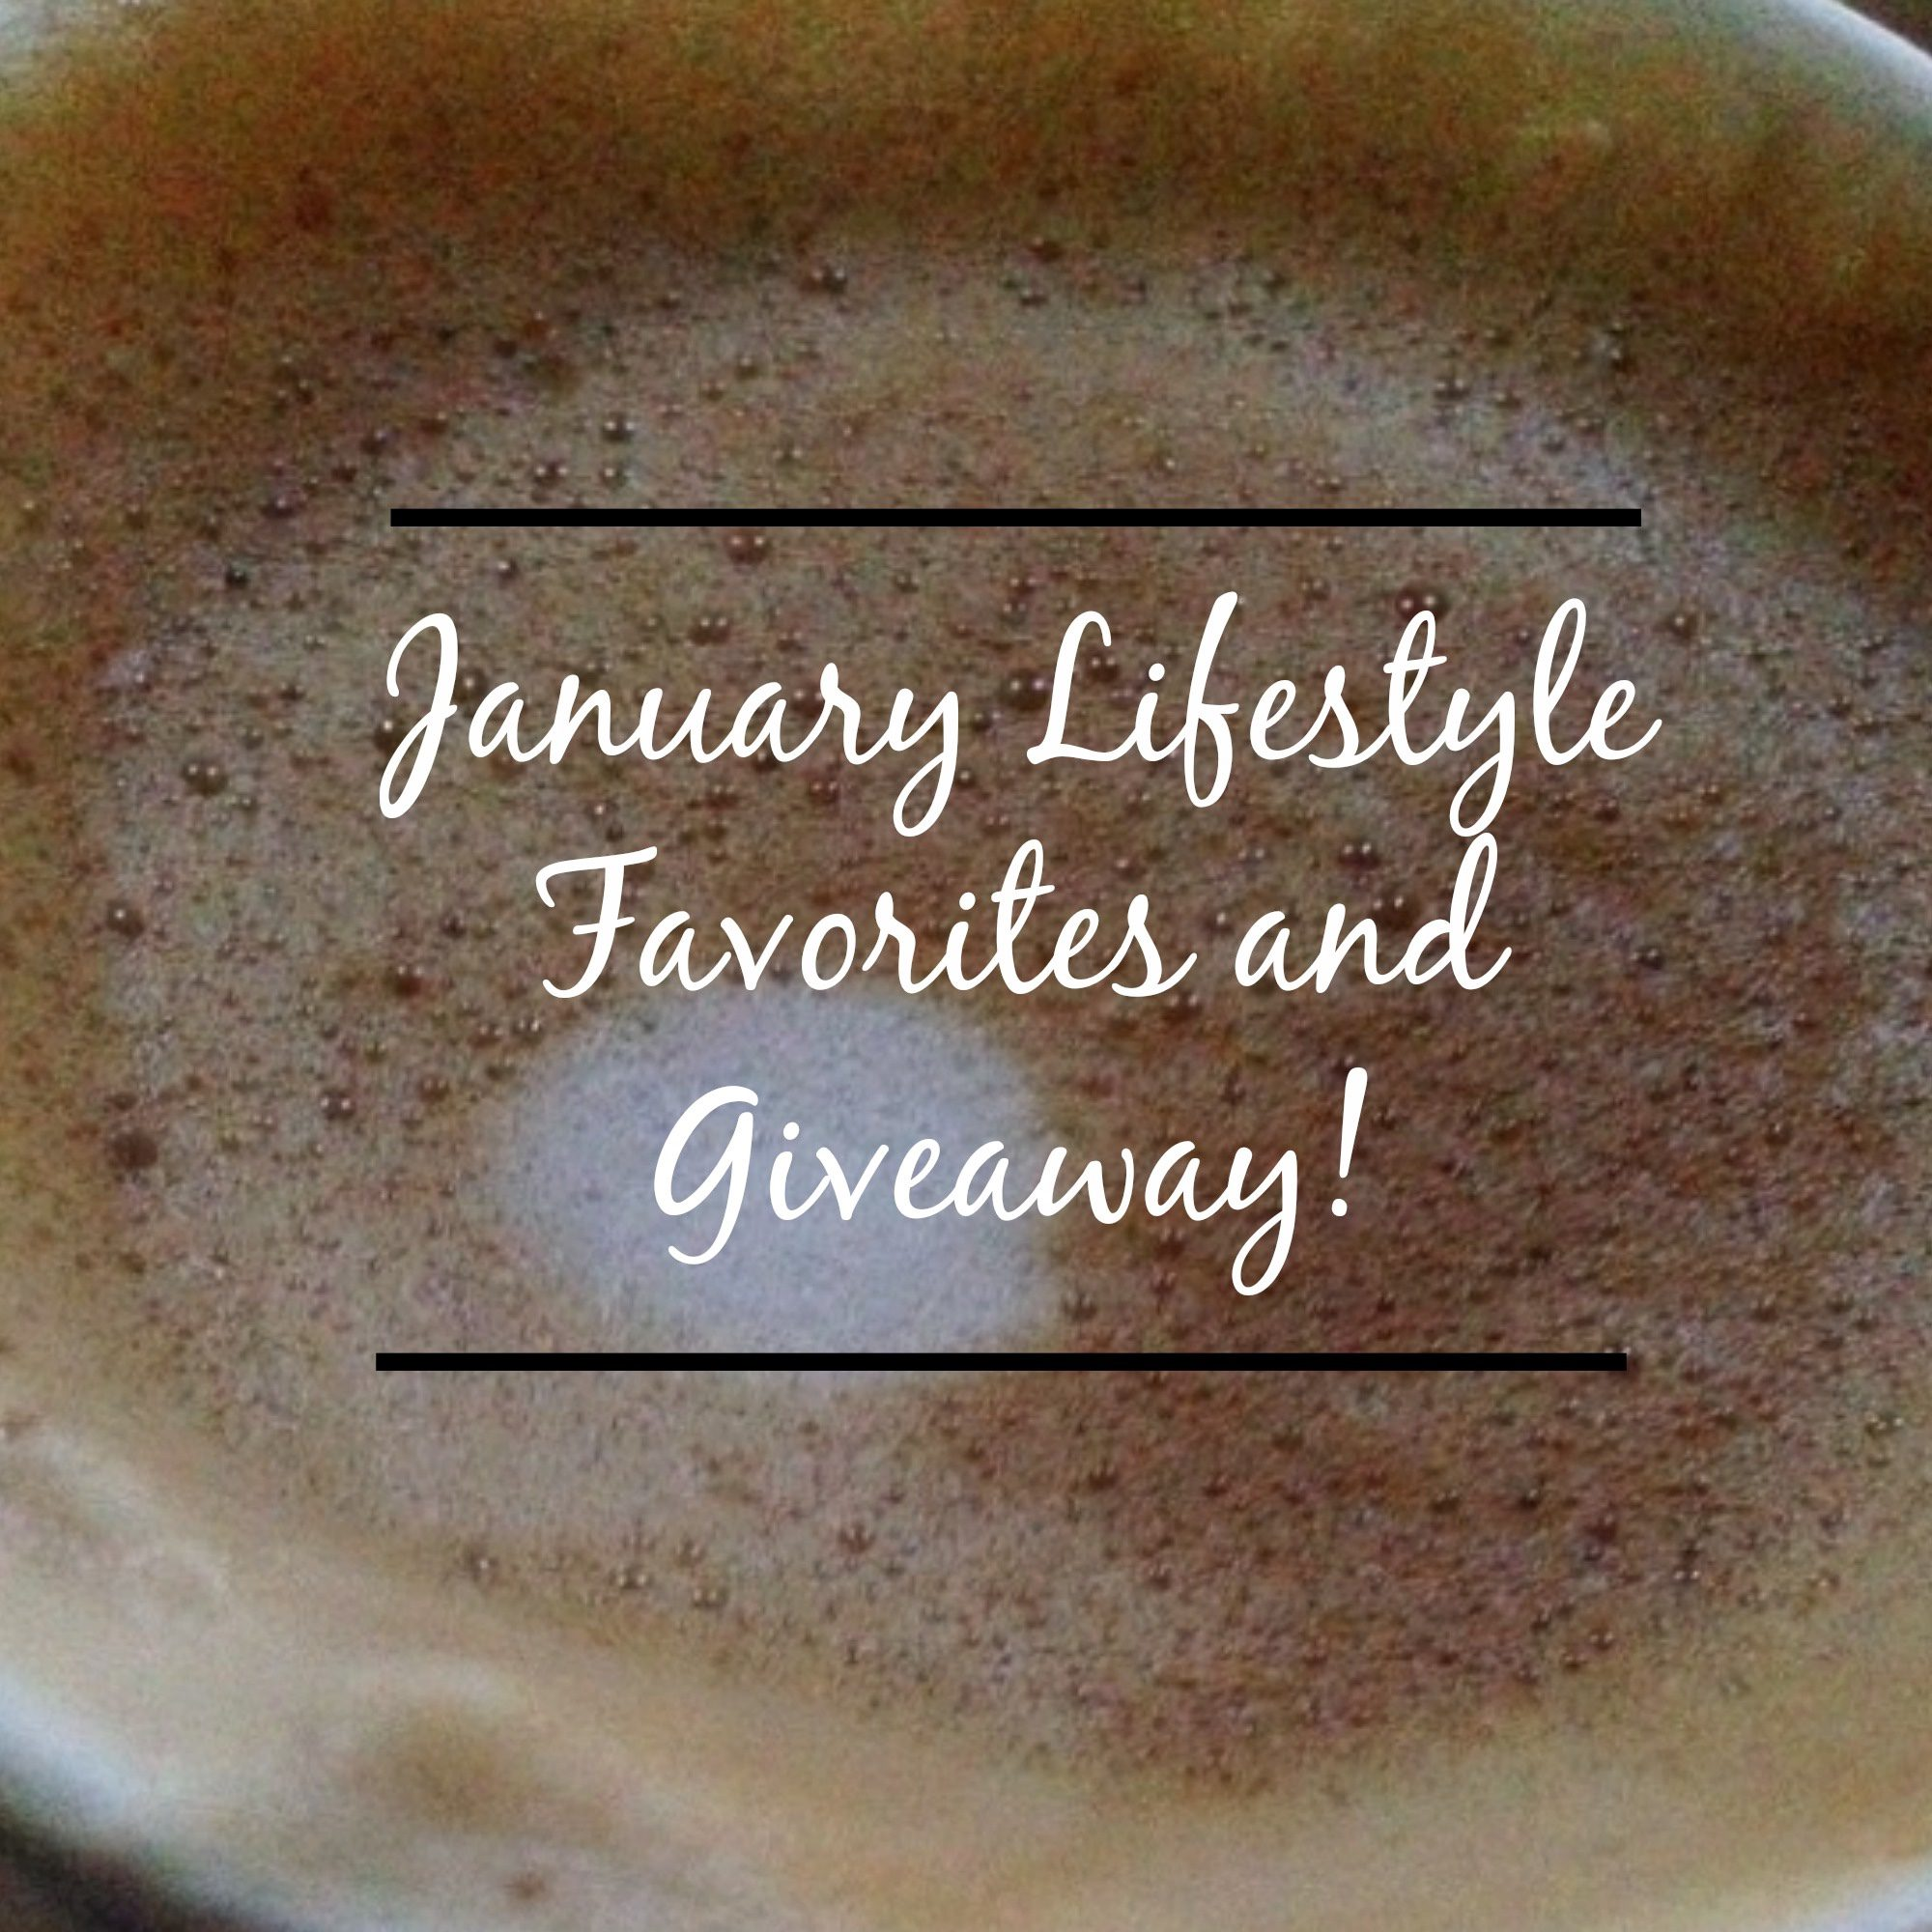 January Lifestyle Favorites and Giveaway!